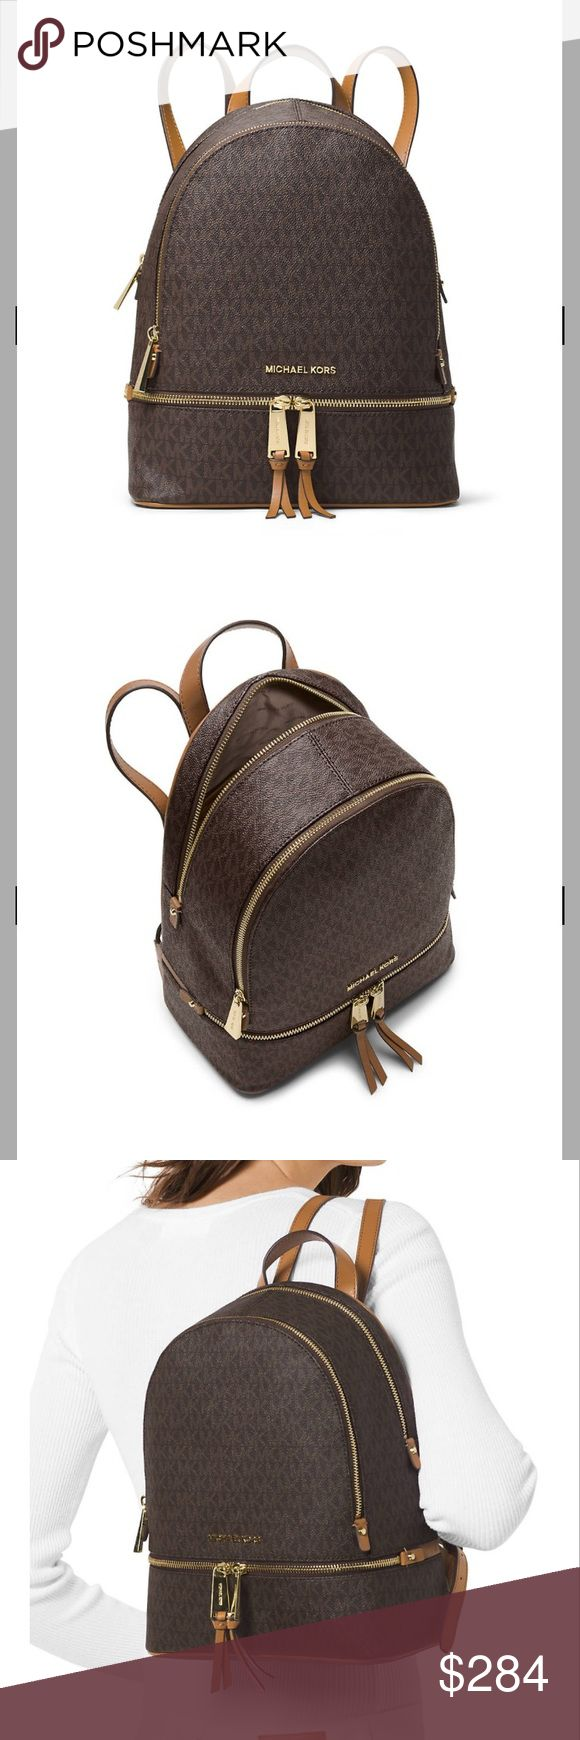 Michael Kors Rhea medium signature backpack Never pay tax or retail here! 1 of these in stock so don't miss out! ladies are carrying backpacks instead of handbags and who said you can't join them? Roomy interior and hands-free handling will allow you to keep all your essentials close at hand. • 9.5-in. W x 12.5-in. H x 5-in. D • Zip closure • Exterior: 2 front zip compartments • Interior: 1 back zip pocket, 1 back slit pocket, 4 front slit pockets • Adjustable shoulder straps • Gold-tone…